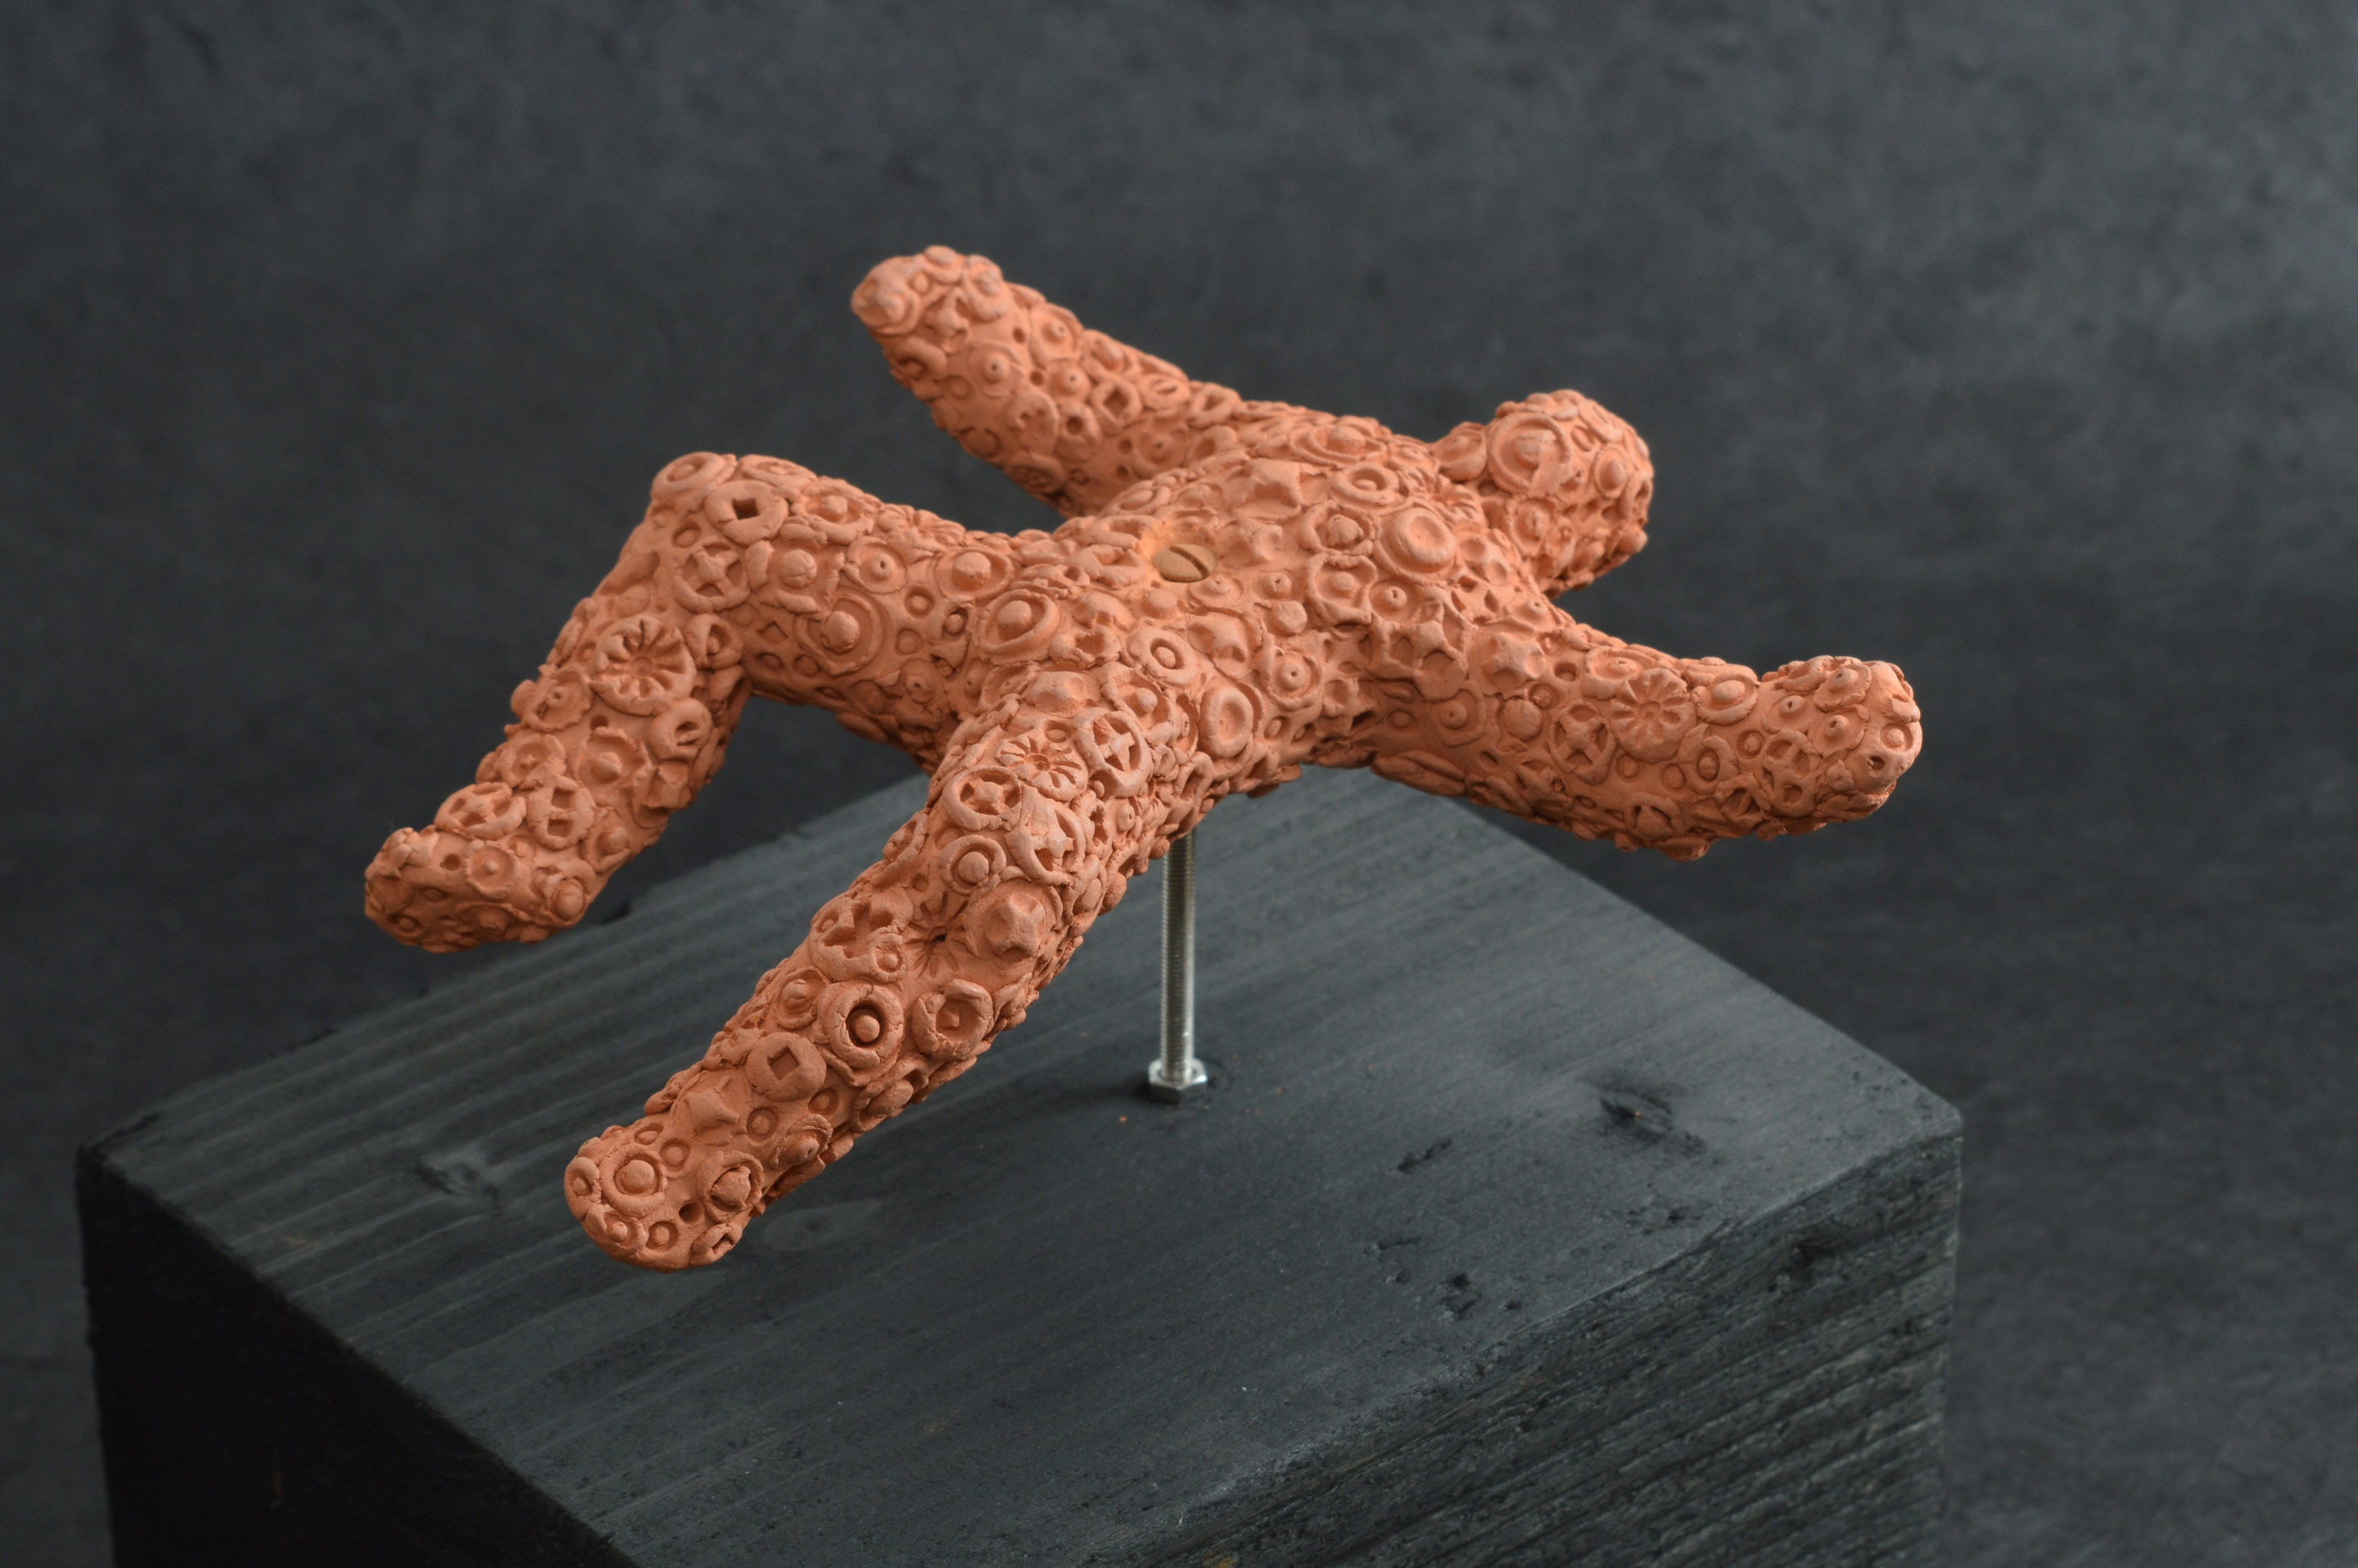 Falling Figure 02 - after Madmen, an unglazed terracotta figure about 10cm in length encrusted with embossed forms